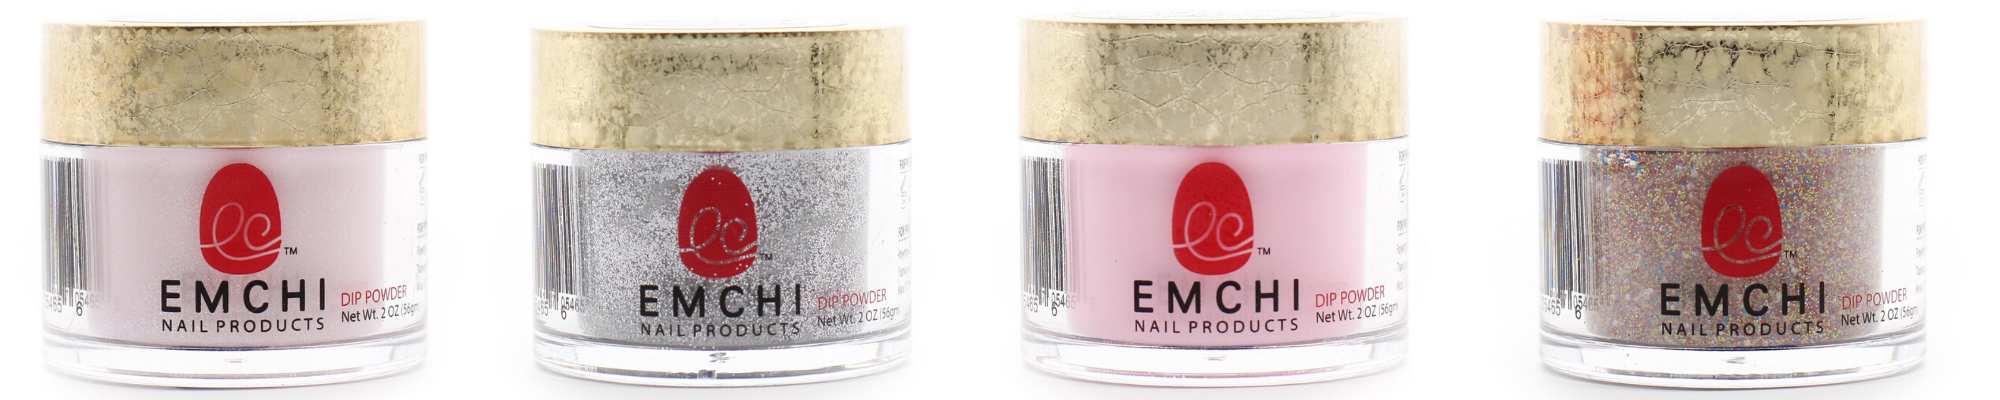 EMCHI Dip Powder - Made in the USA & Cruelty-Free